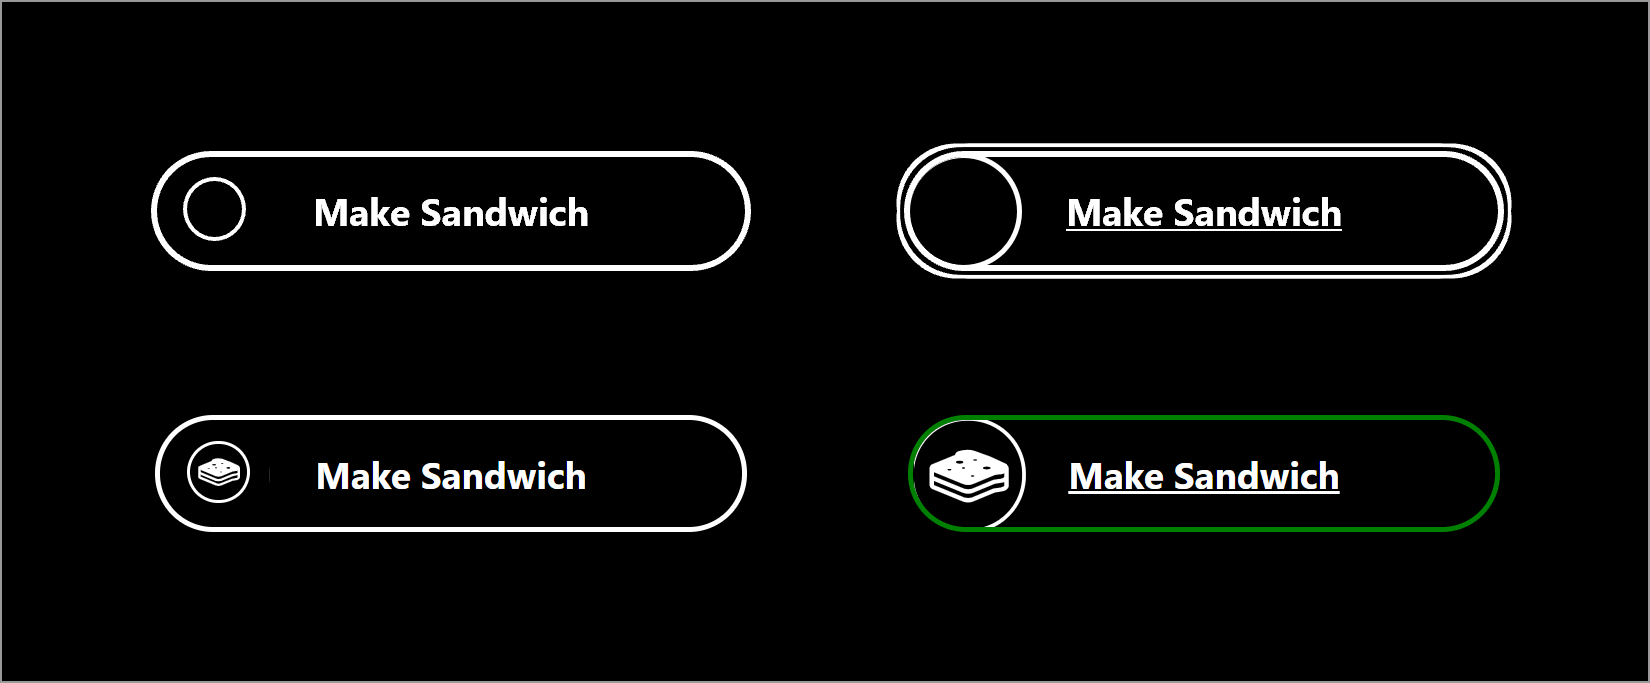 4 versions of the same button, all with a black background and monochromatic styles.